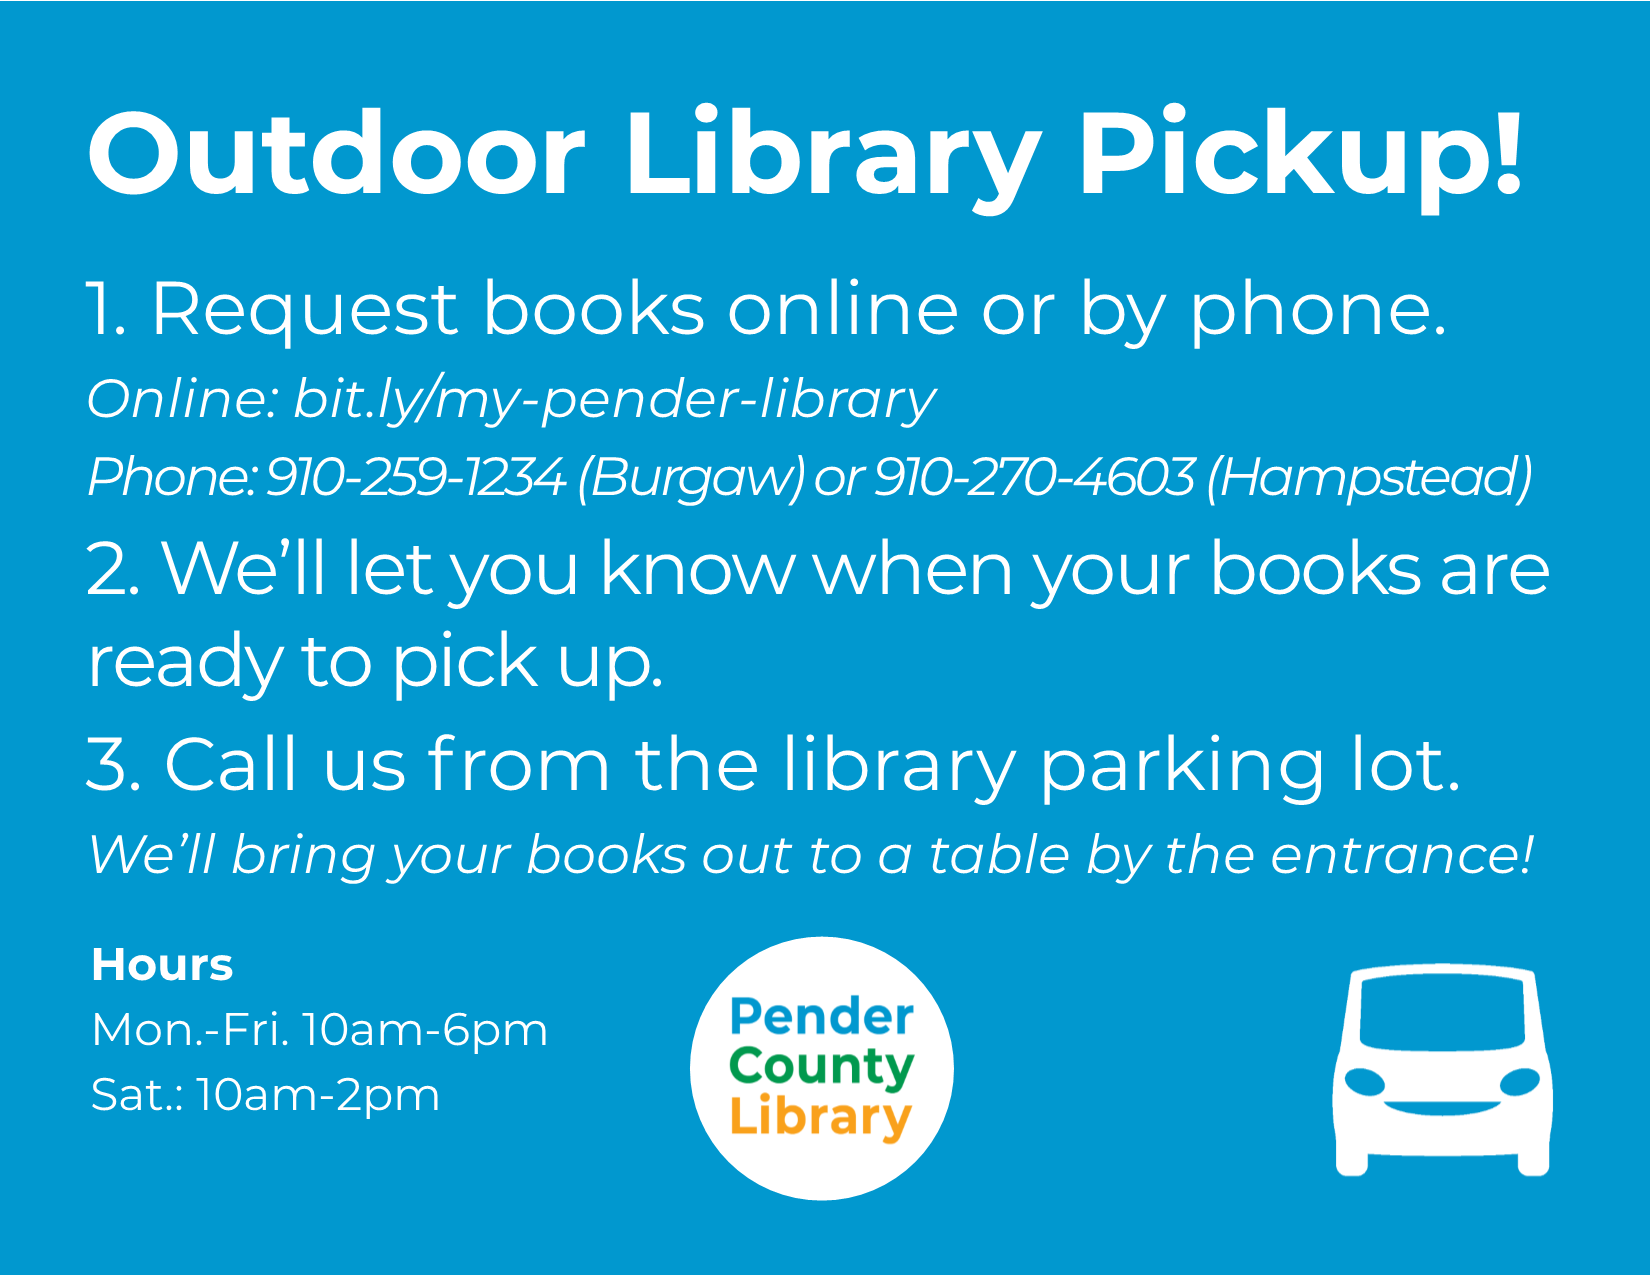 Outdoor Library Pickup! 1. Request books online or by phone. 2. We'll let you know when your books are ready to pick up. 3. Call us from the library parking lot.